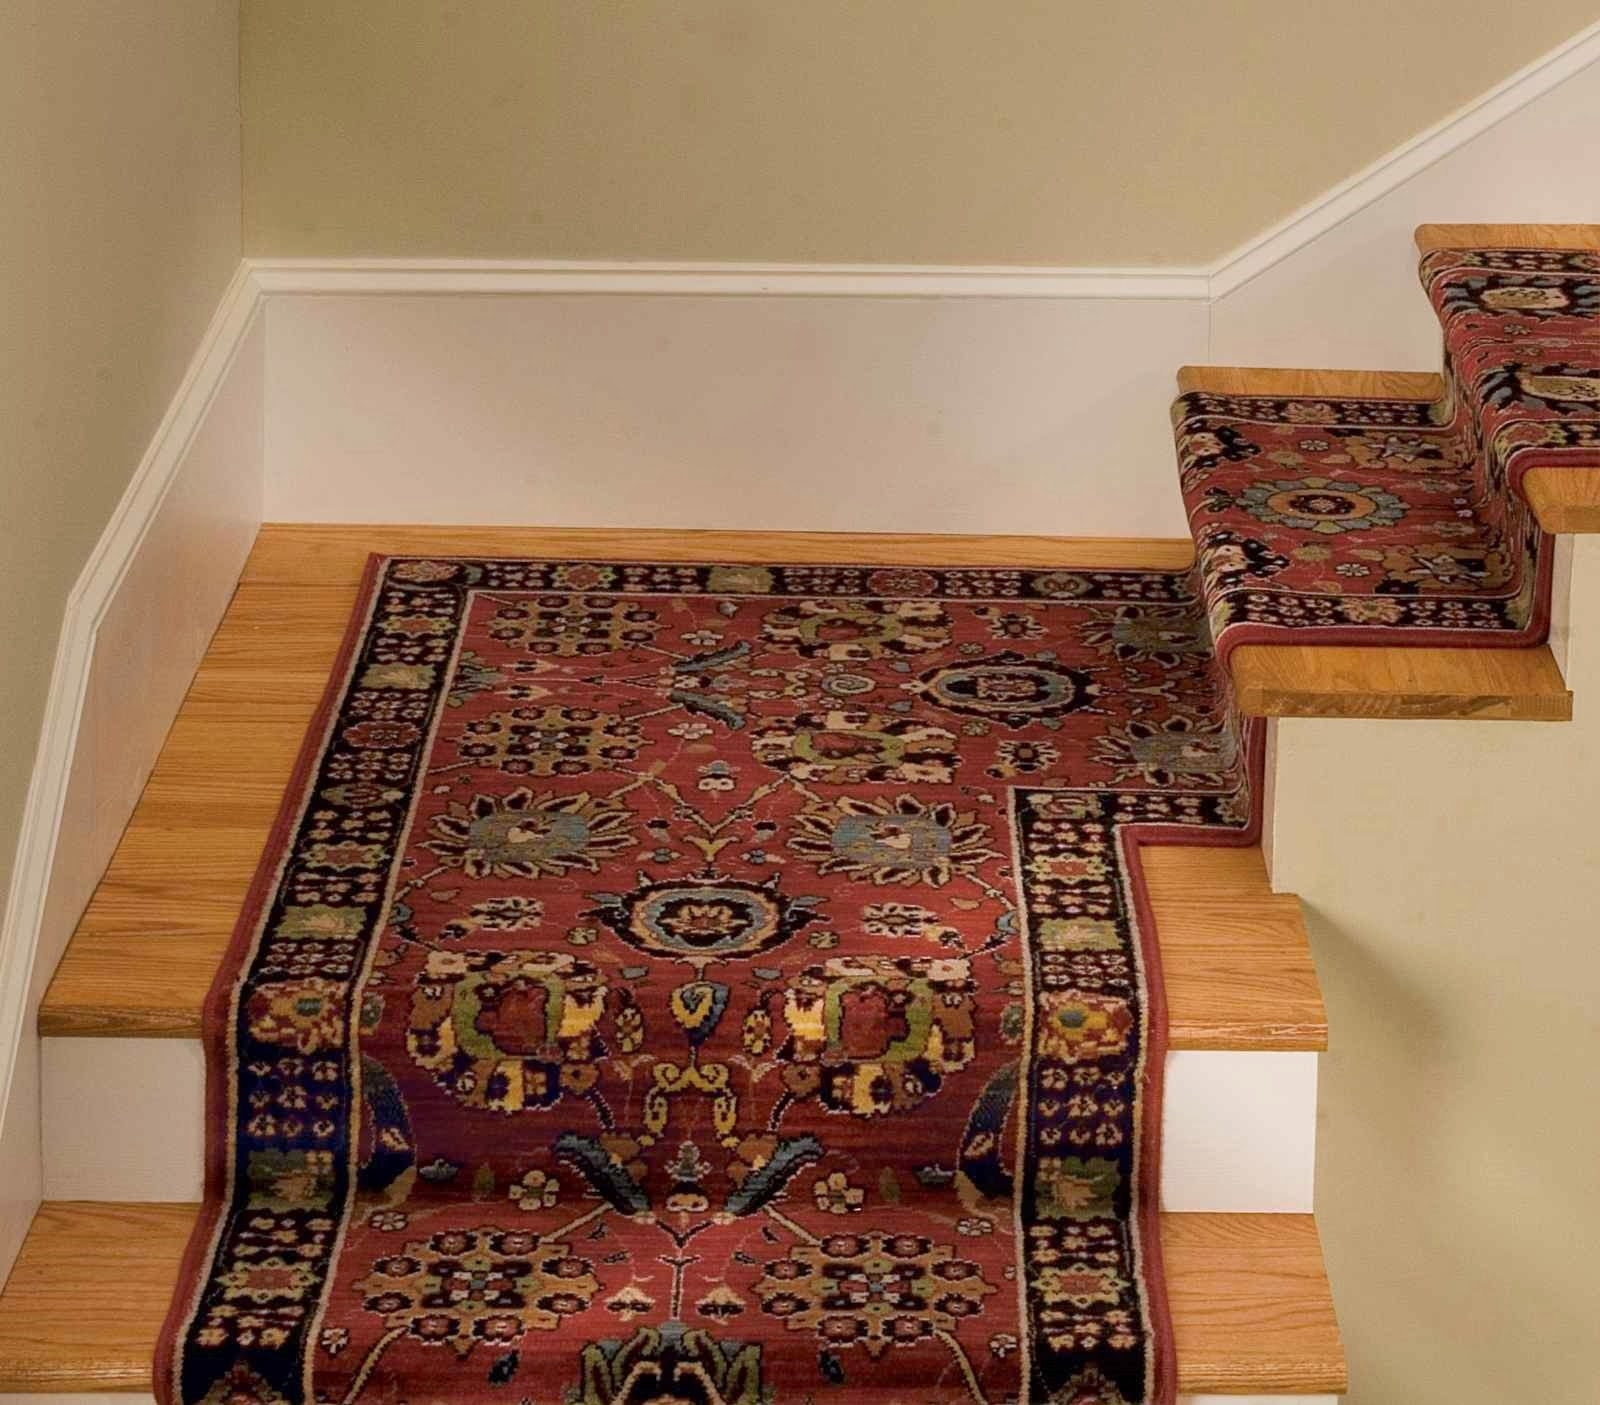 Staircase Tread Rugs Roll Rug Runner Area Rugs Stair Treads For Stair Tread Rug Gripper (View 2 of 15)